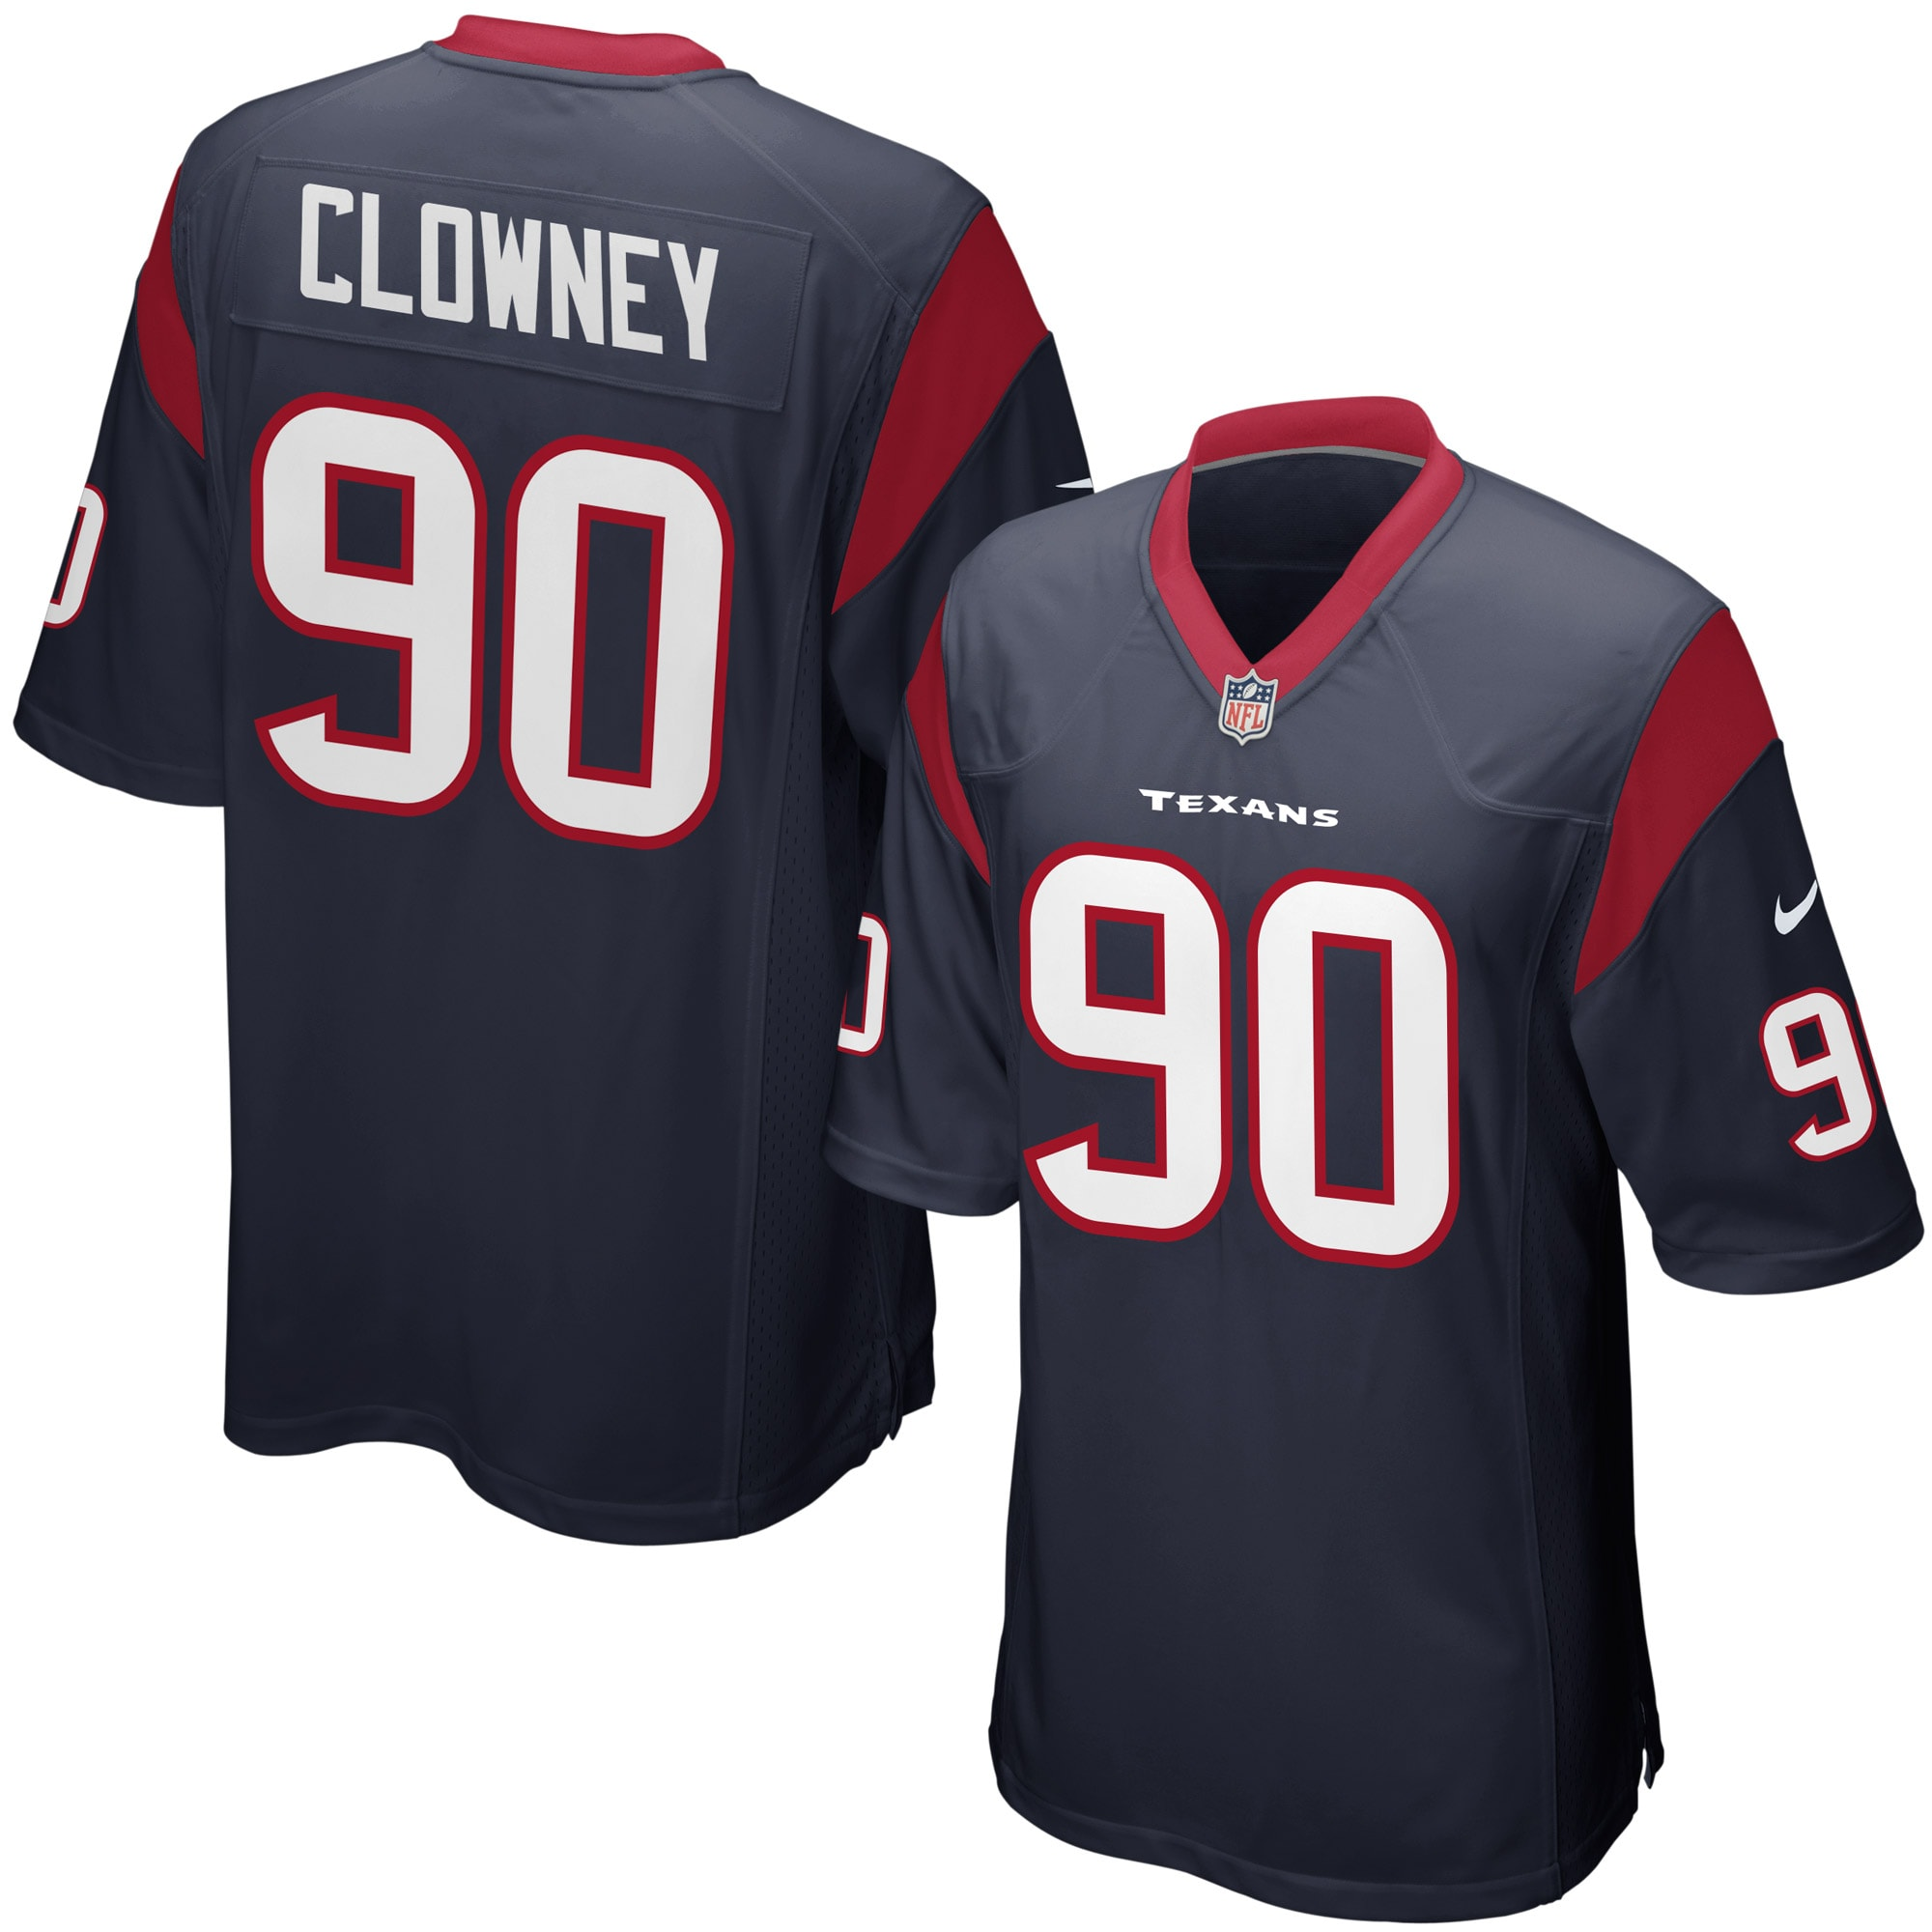 Jadeveon Clowney Houston Texans Nike Youth Team Color Game Jersey - Navy Blue